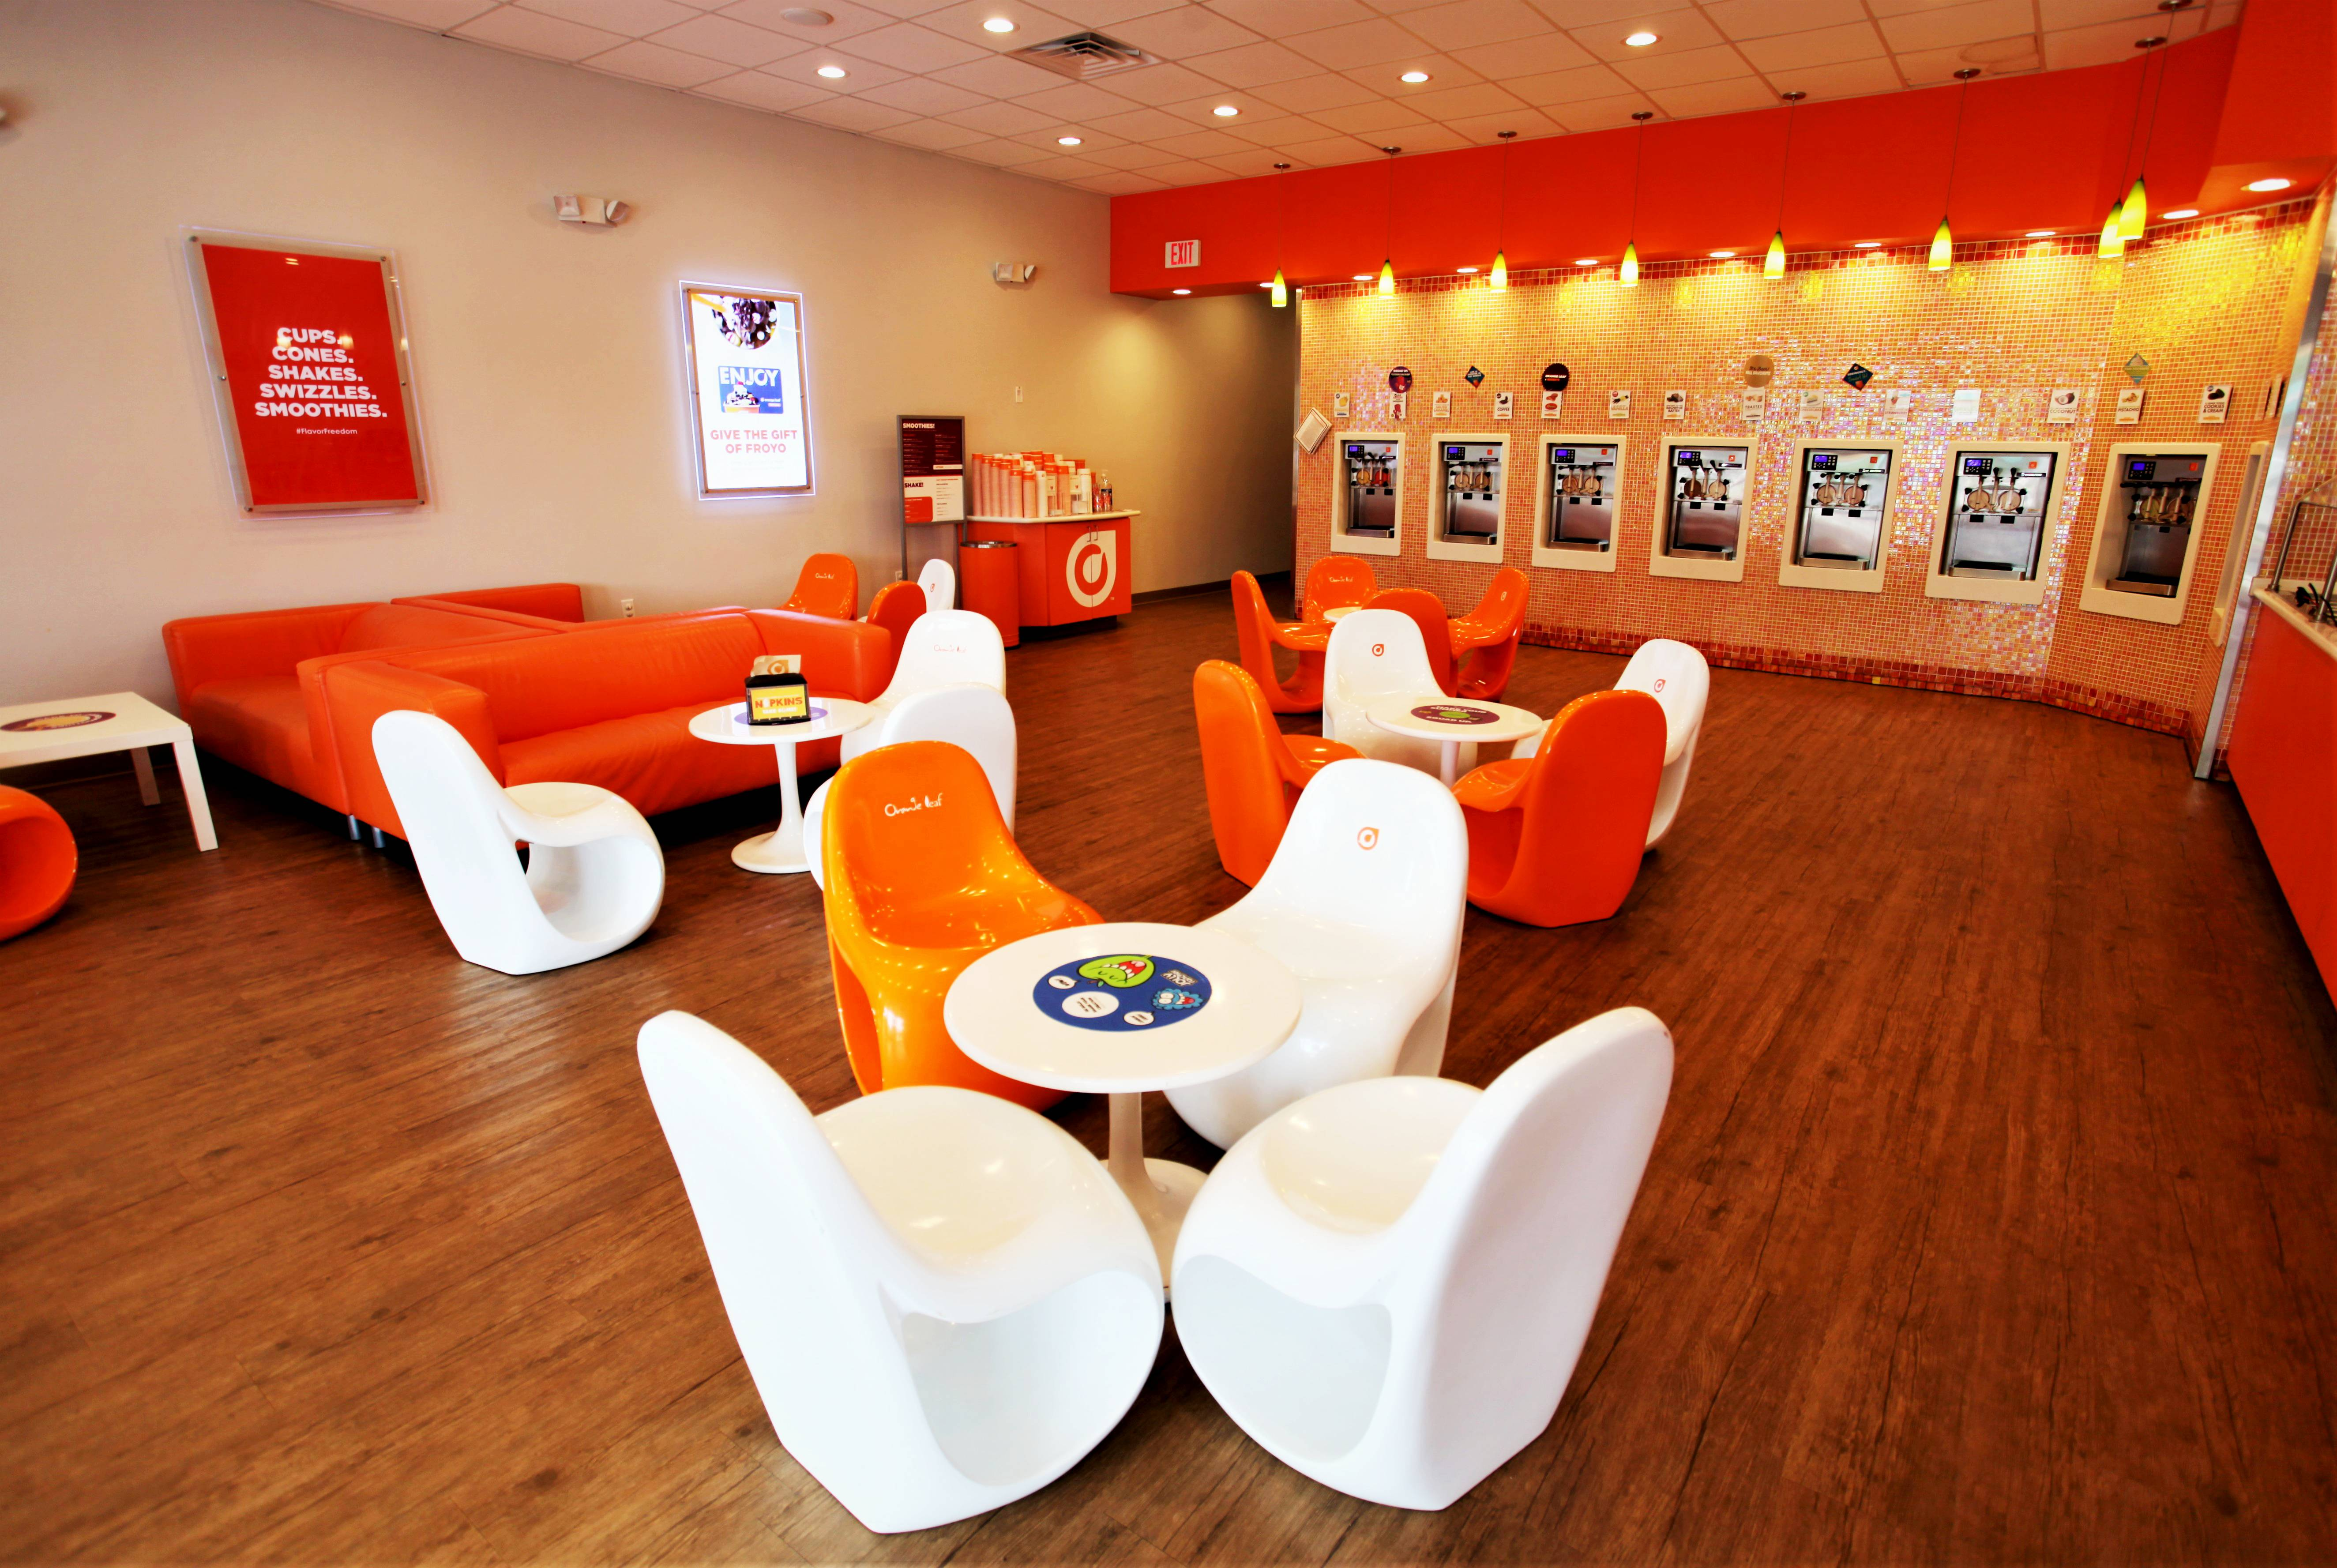 Superieur Orange Leaf Reopened At 1011 S. Glenstone Ave. In Springfield April 24, 2019